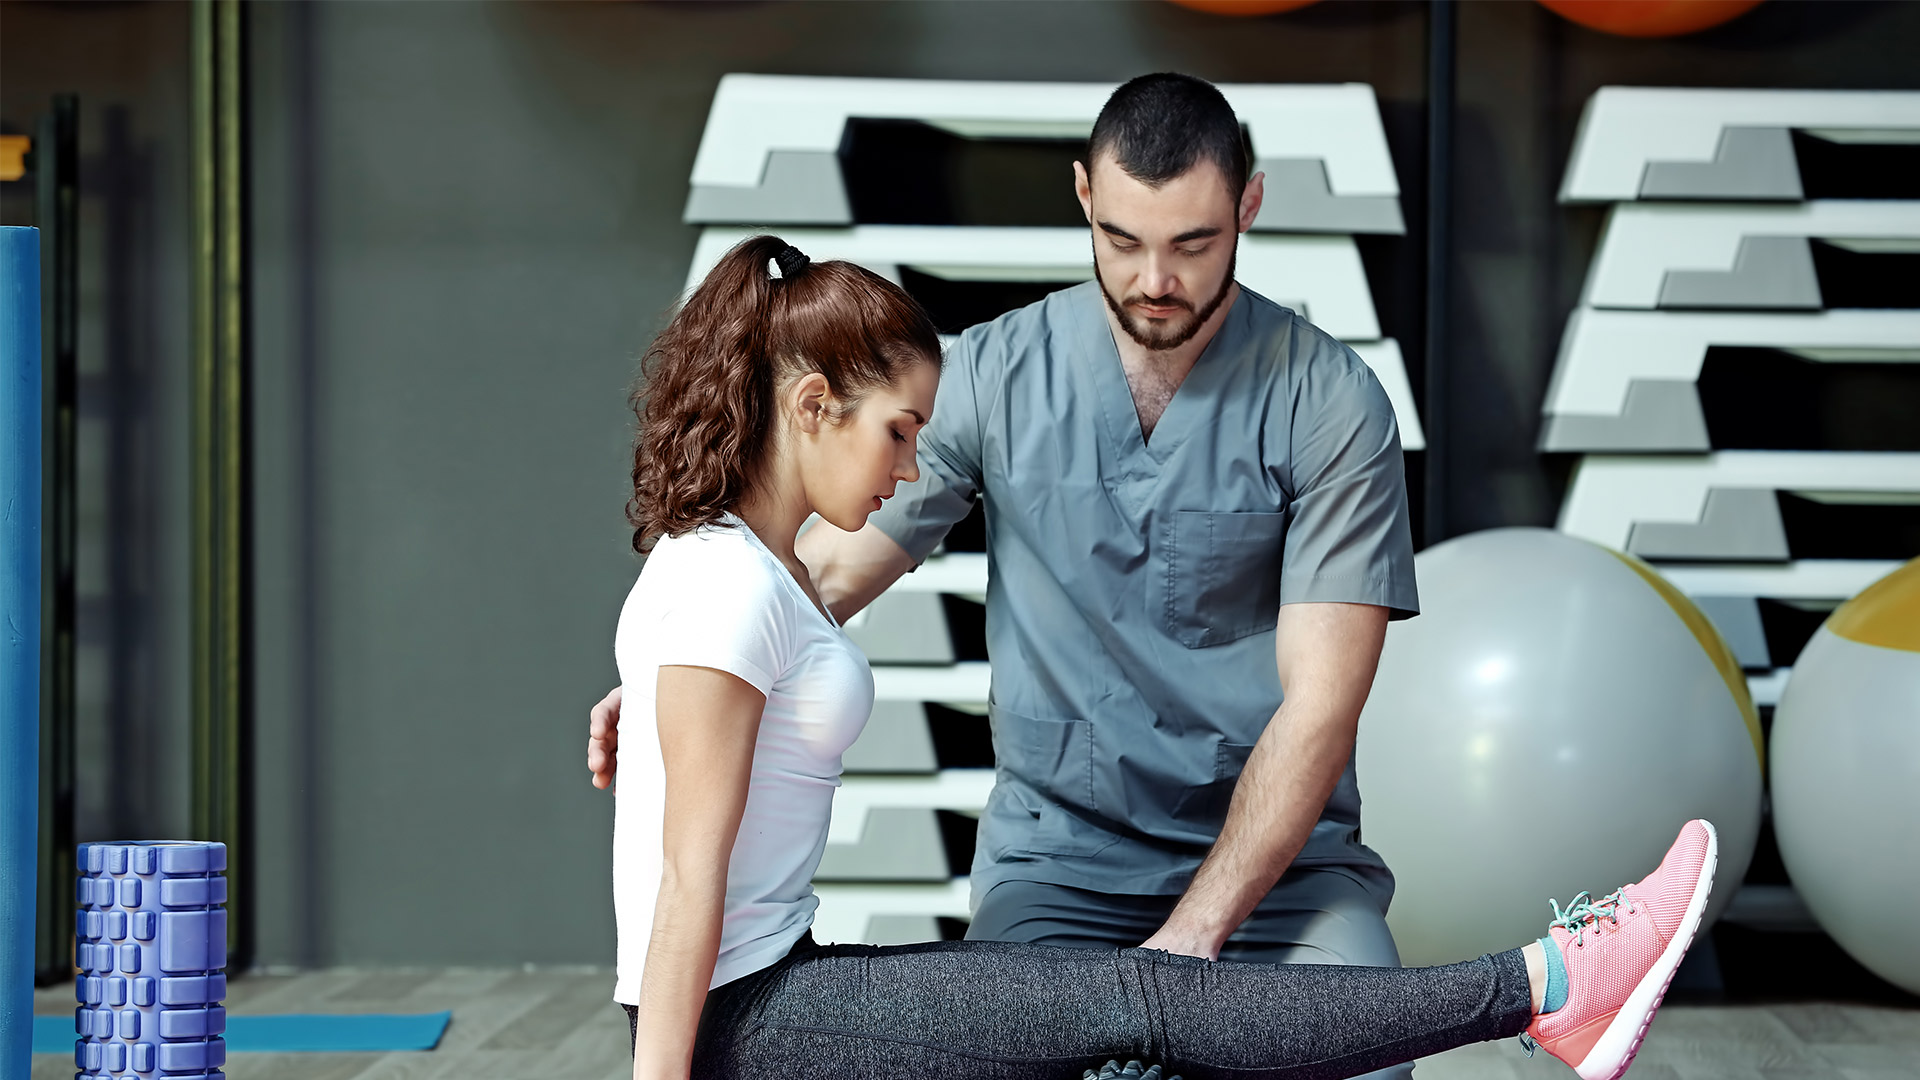 Start a career that really makes a difference now   STUDY CERTIFICATE IV in ALLIED HEALTH ASSISTANCE (PHYSIOTHERAPY, OCCUPATIONAL THERAPY) (HLT43015)   FIND OUT MORE